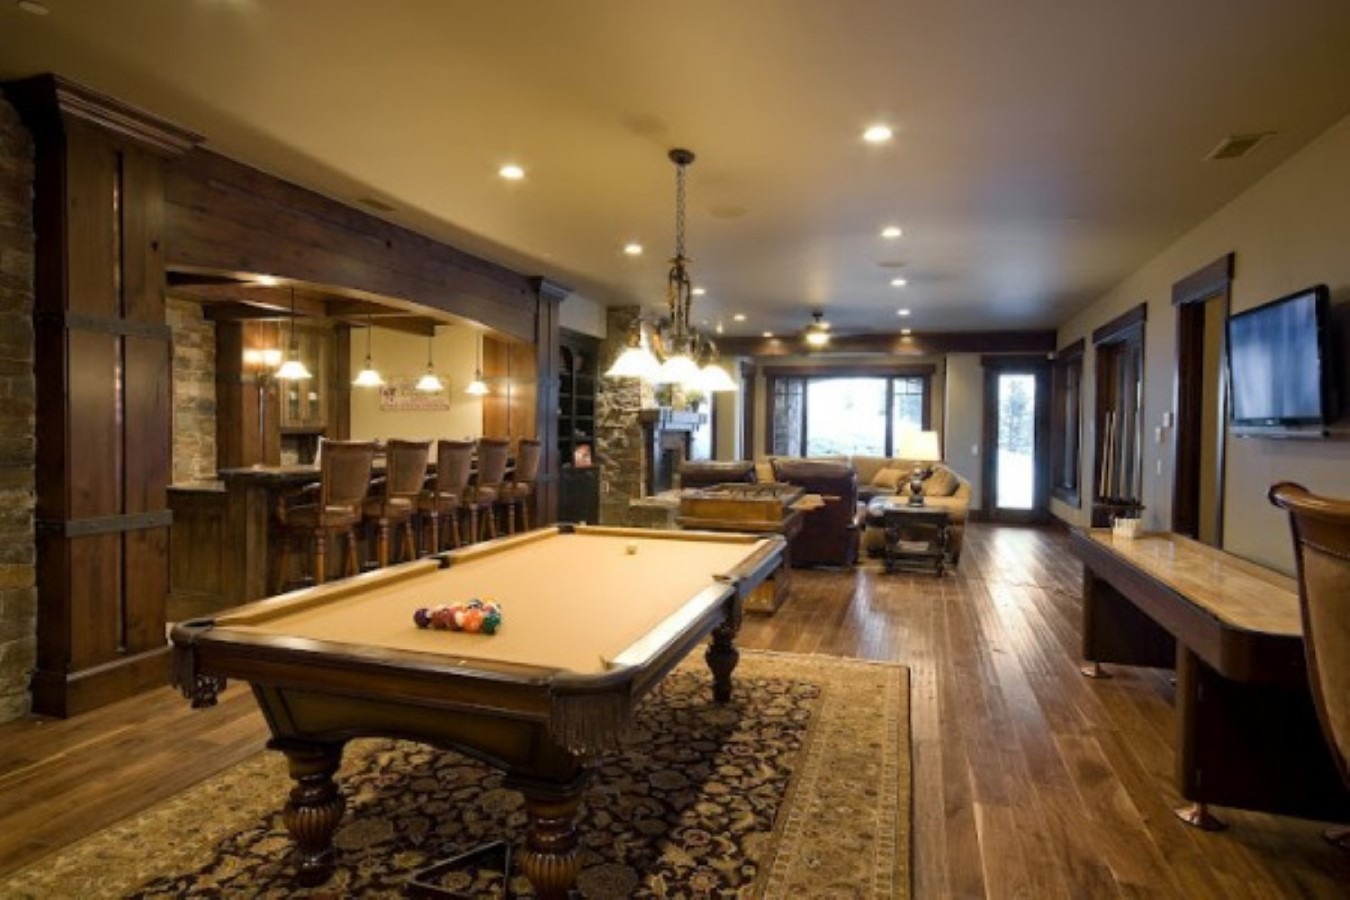 Game Room Flooring : Home priority playing game room ideas for mind and body